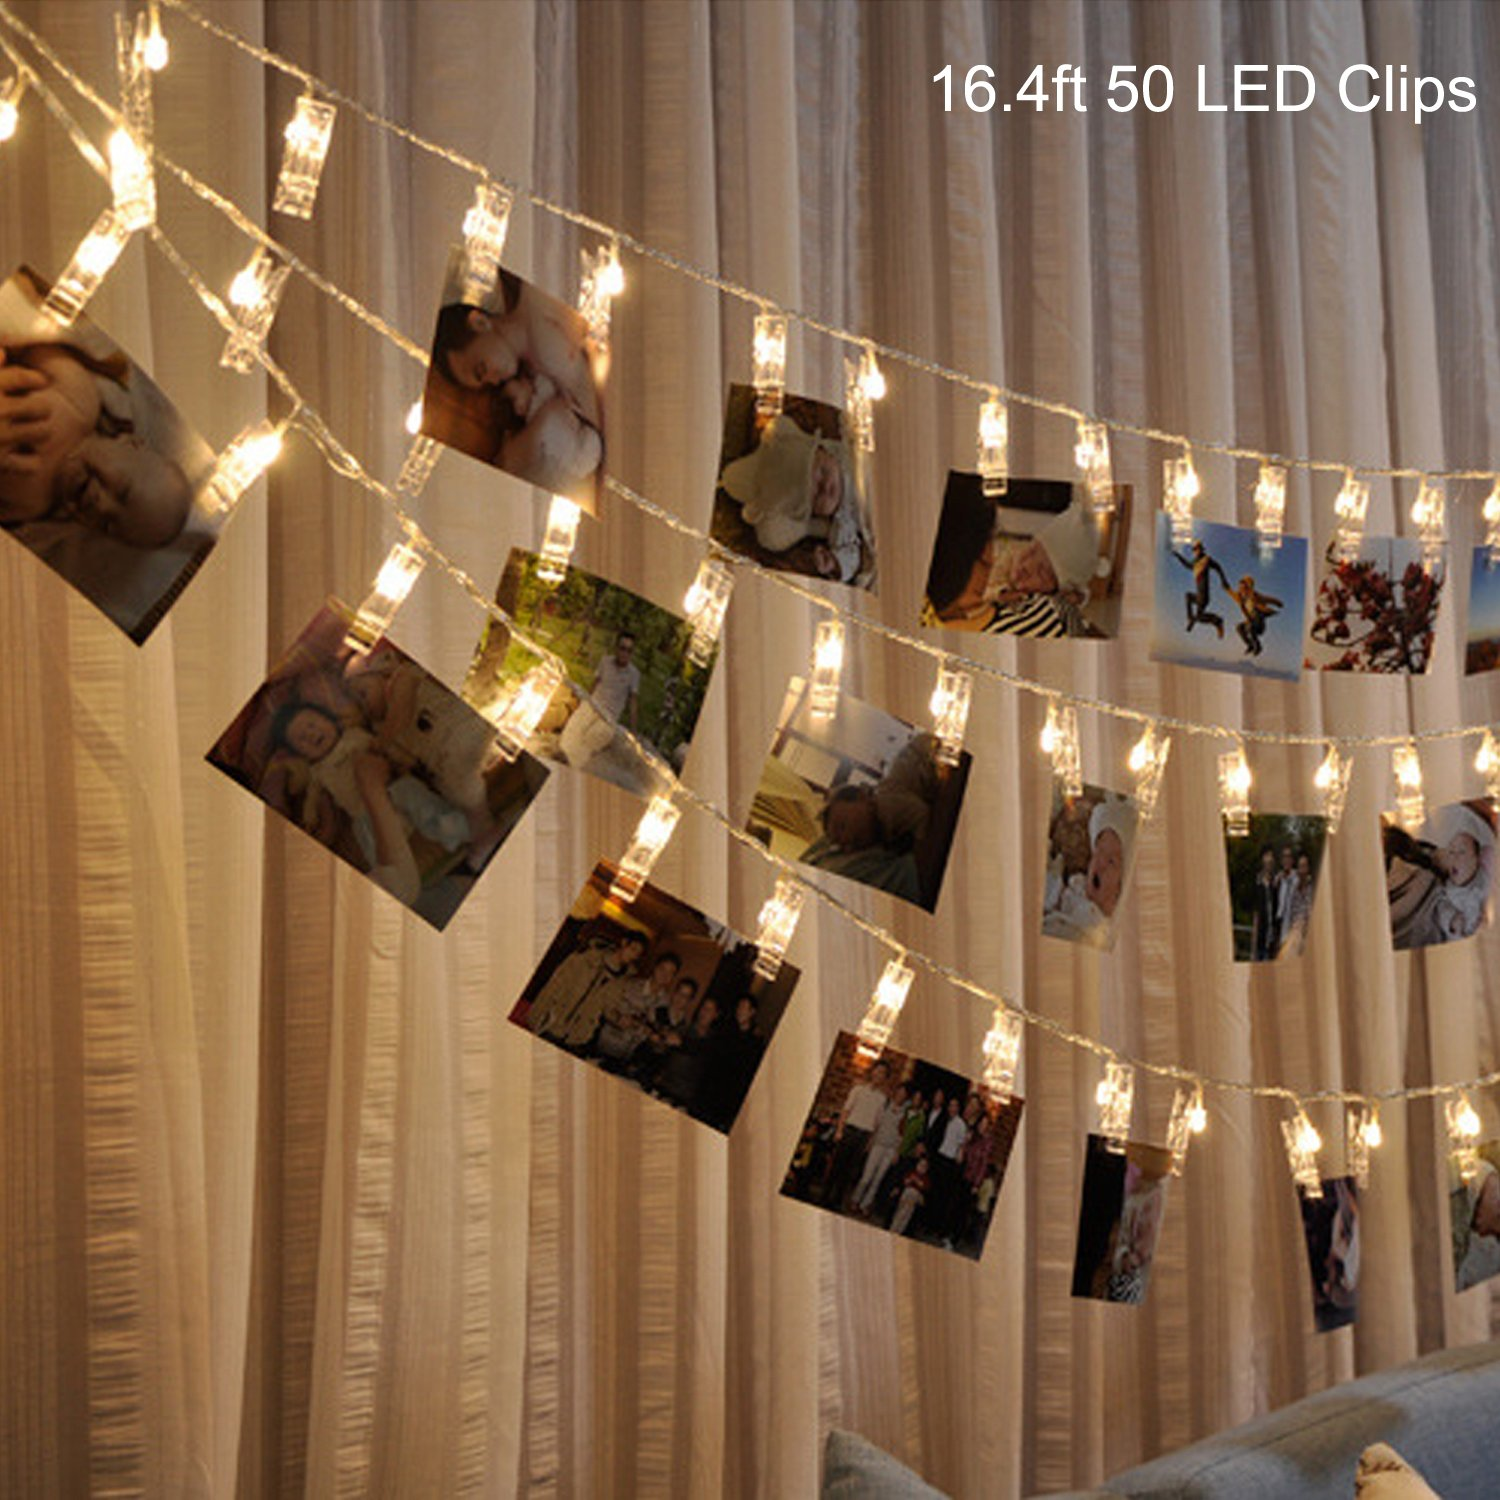 B1ST LED Photo Clip String Lights 16.4ft 5M 50 Clips Lights Battery Powered Rope Lighting Wedding Party Christmas Home Decor strand Light for Pictures Notes Artwork LED Decor (5 M Warm White)